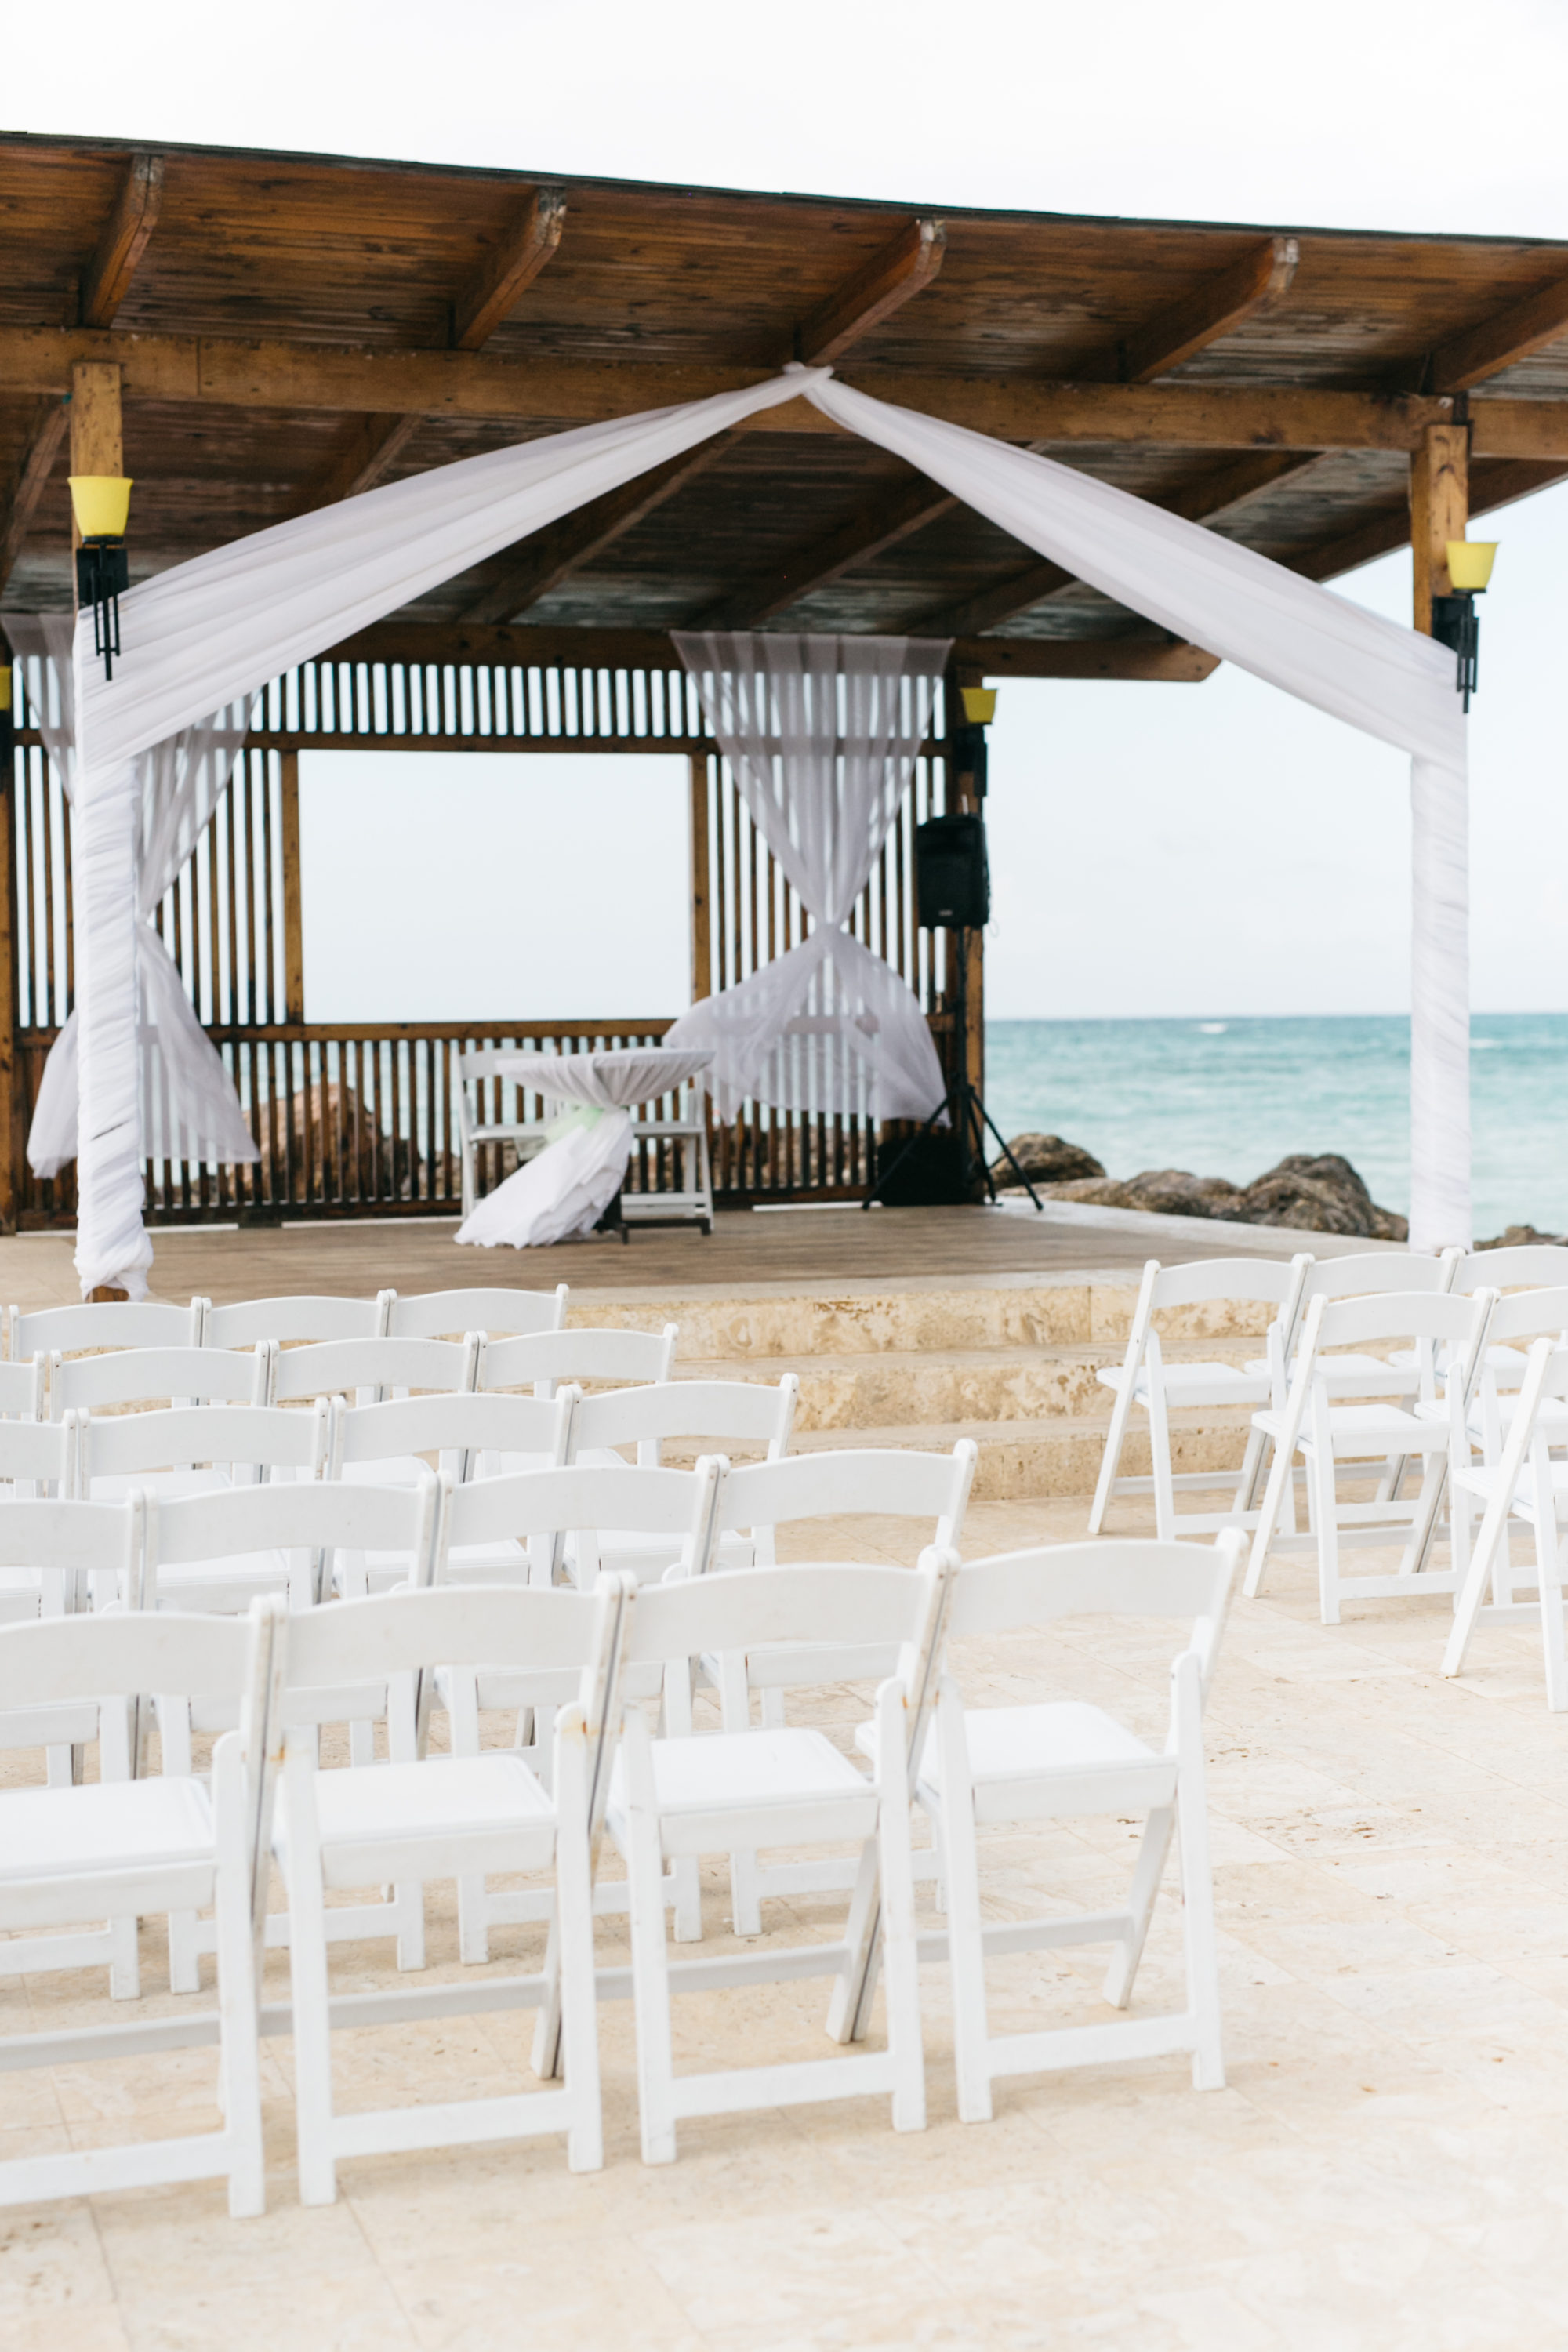 Destination wedding at Royalton White Sands Resort Jamaica